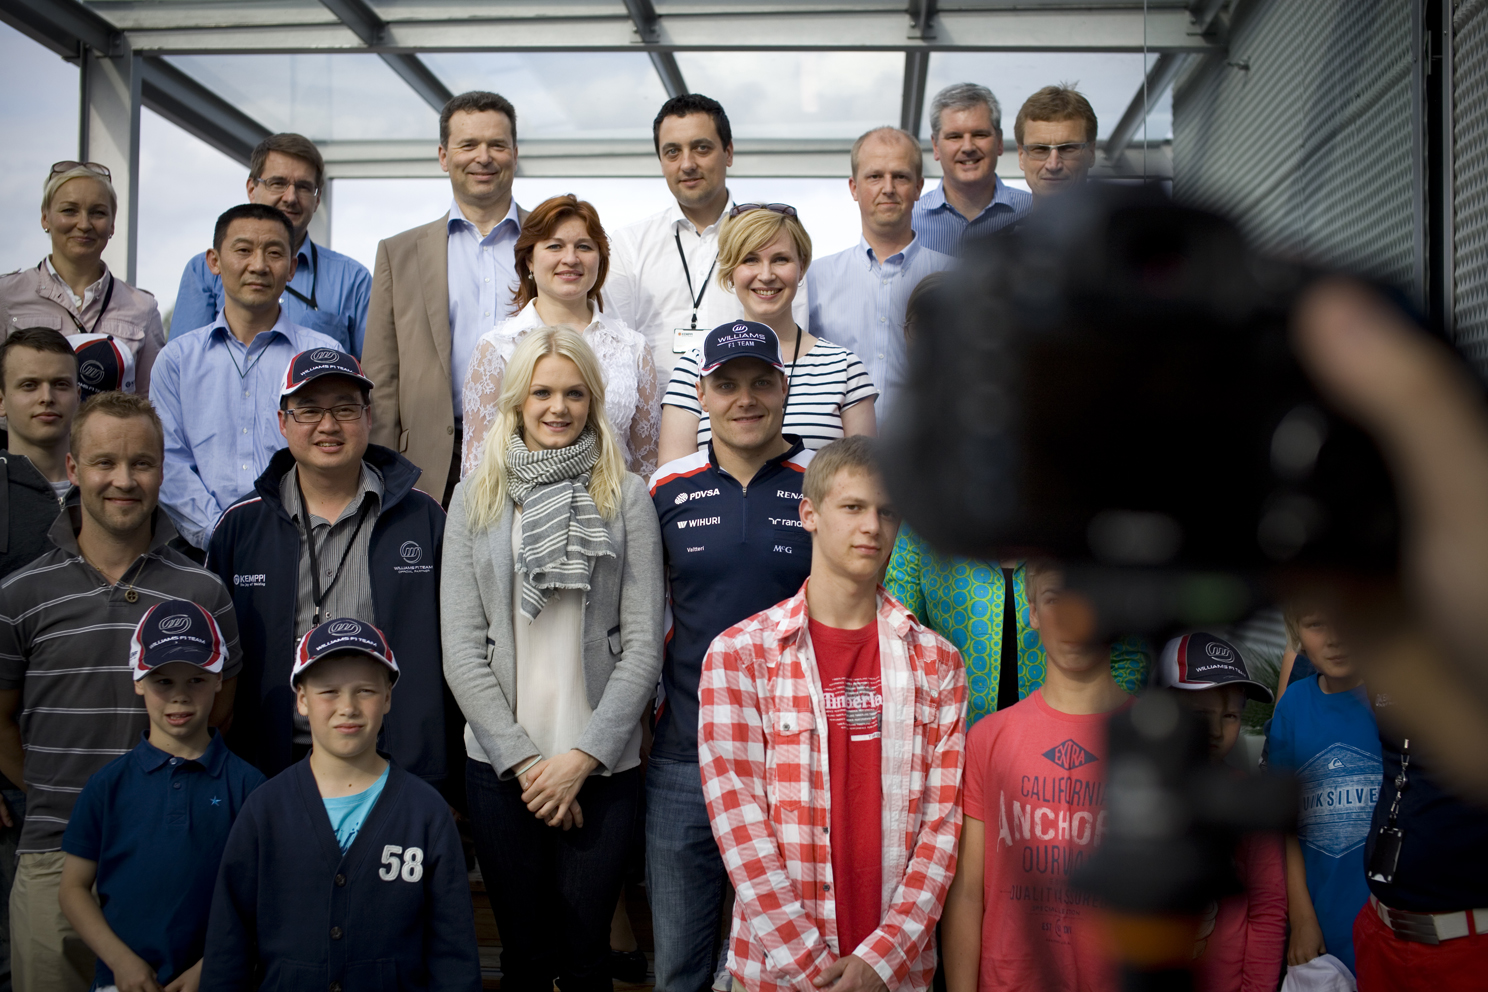 Valtteri Bottas, Finnish Formula One racing driver with the Williams F1 Team - Shot for F1 Racing